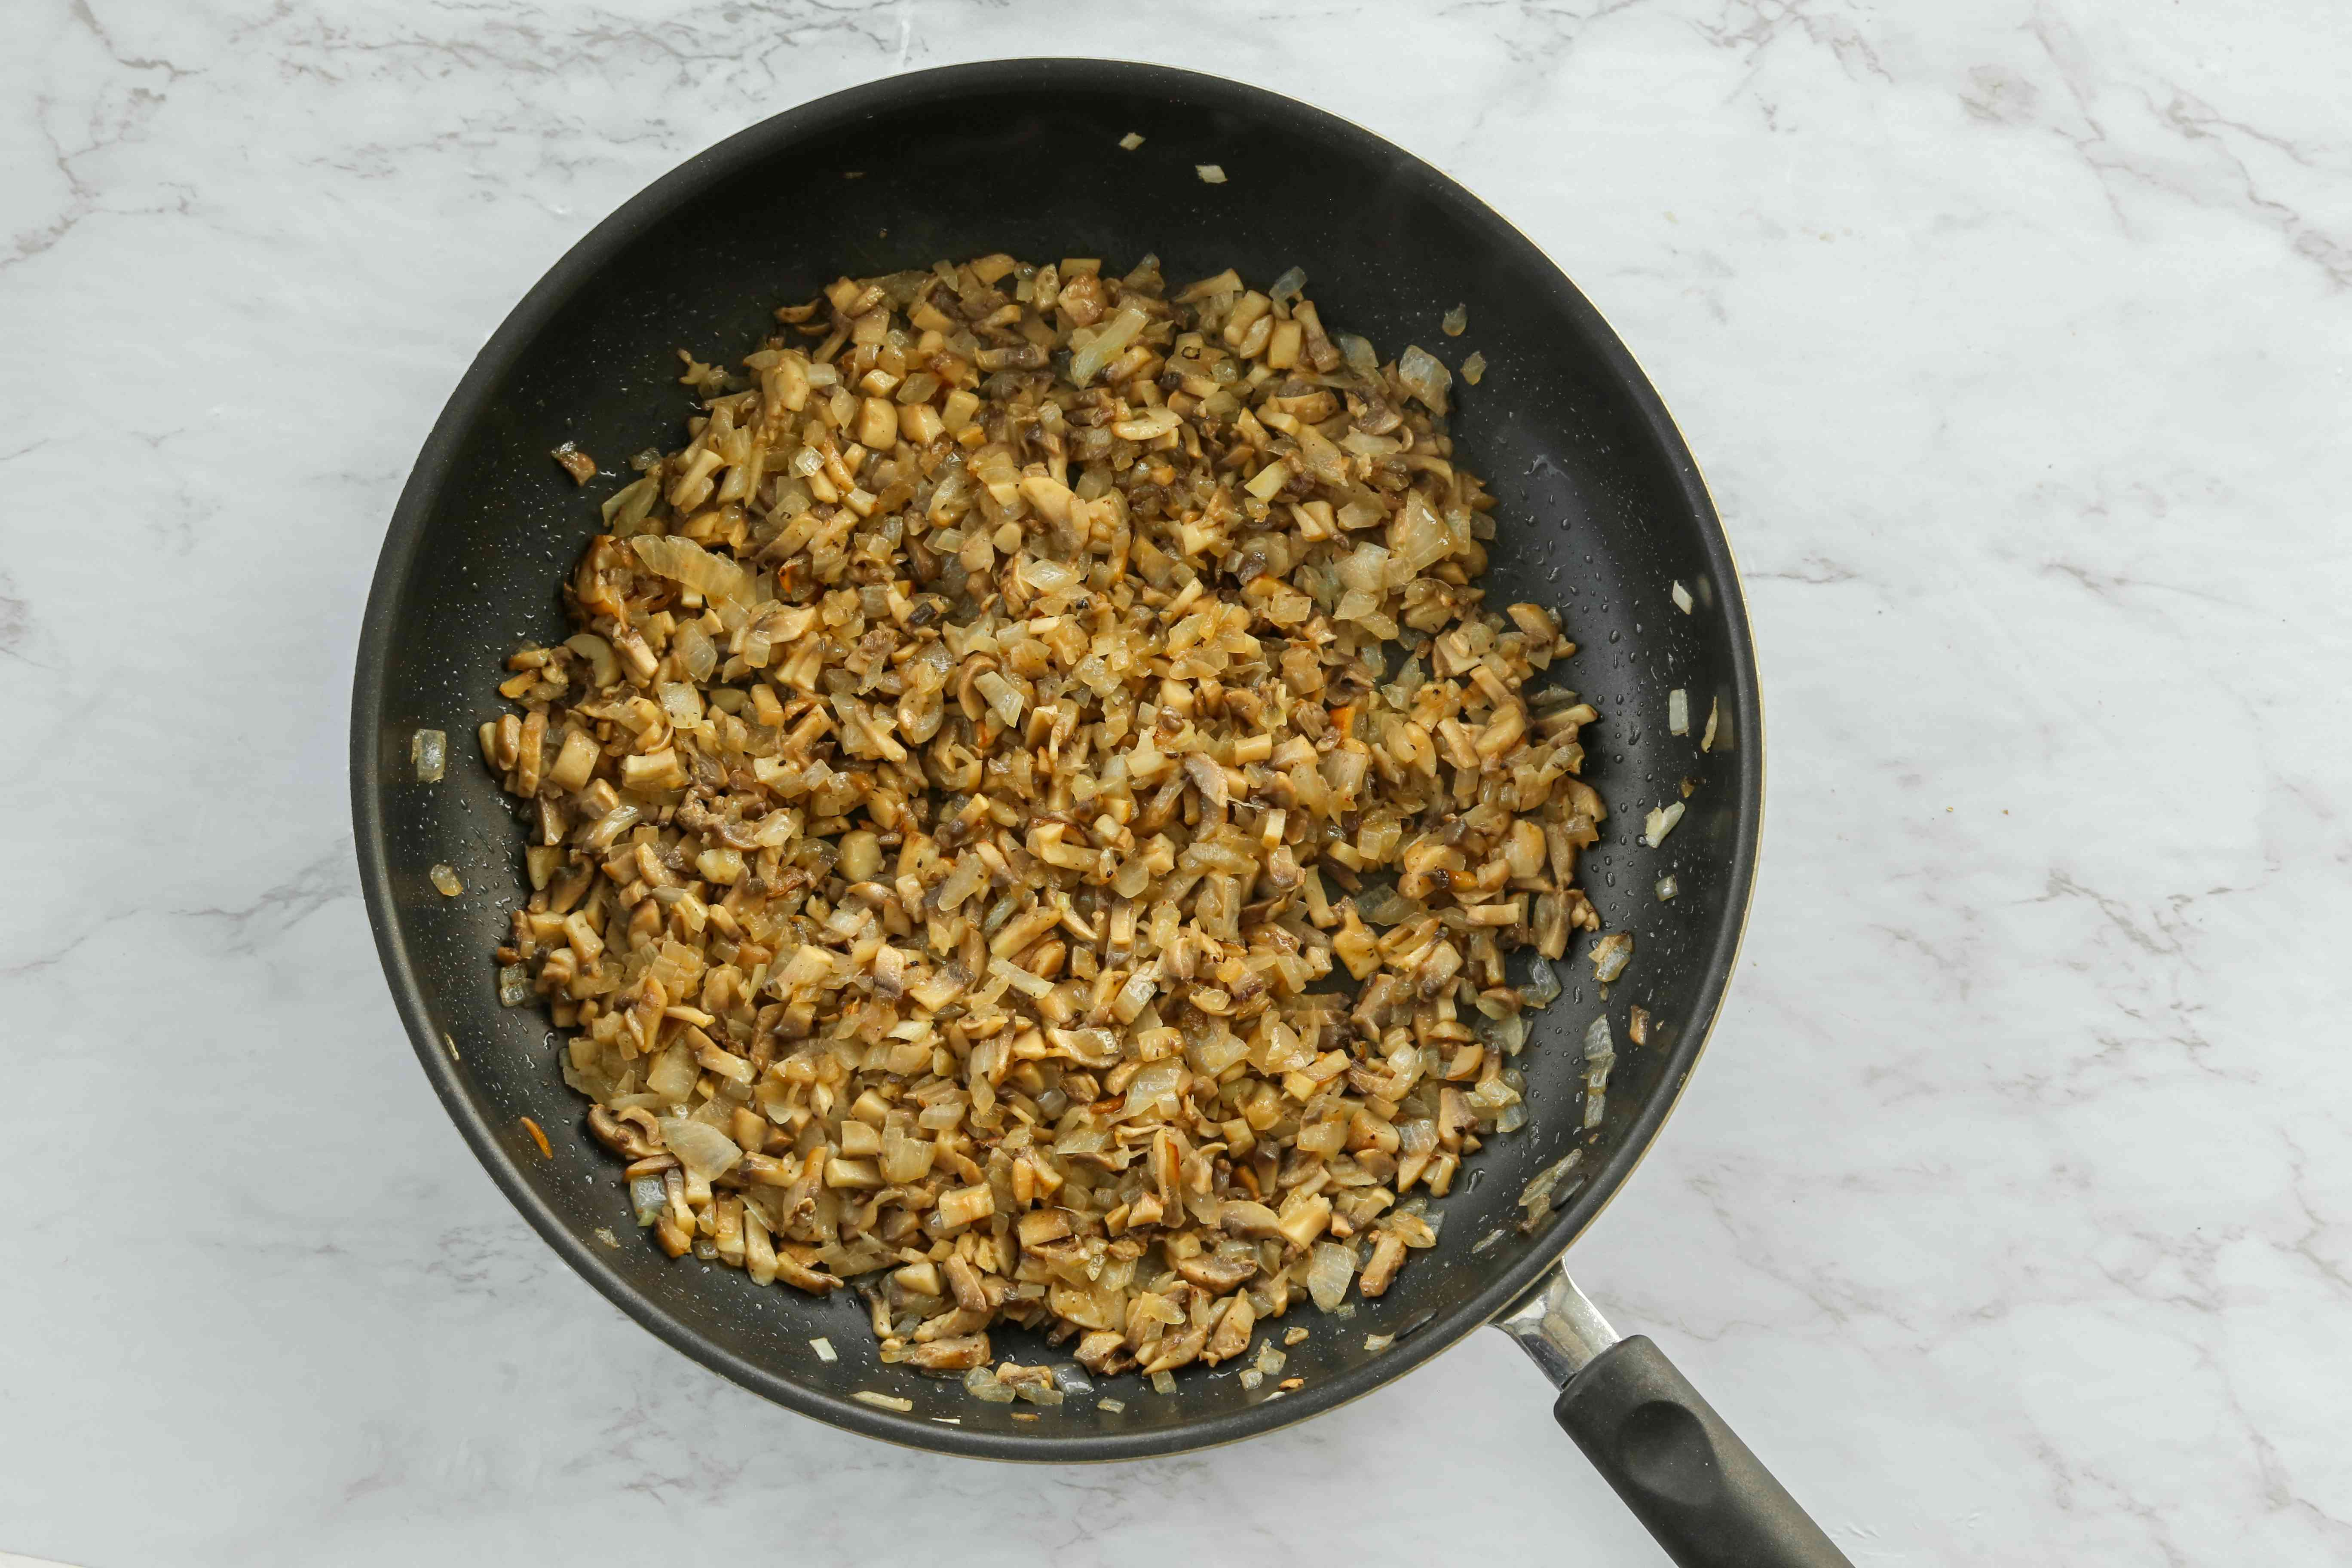 Cook the onions and mushrooms together